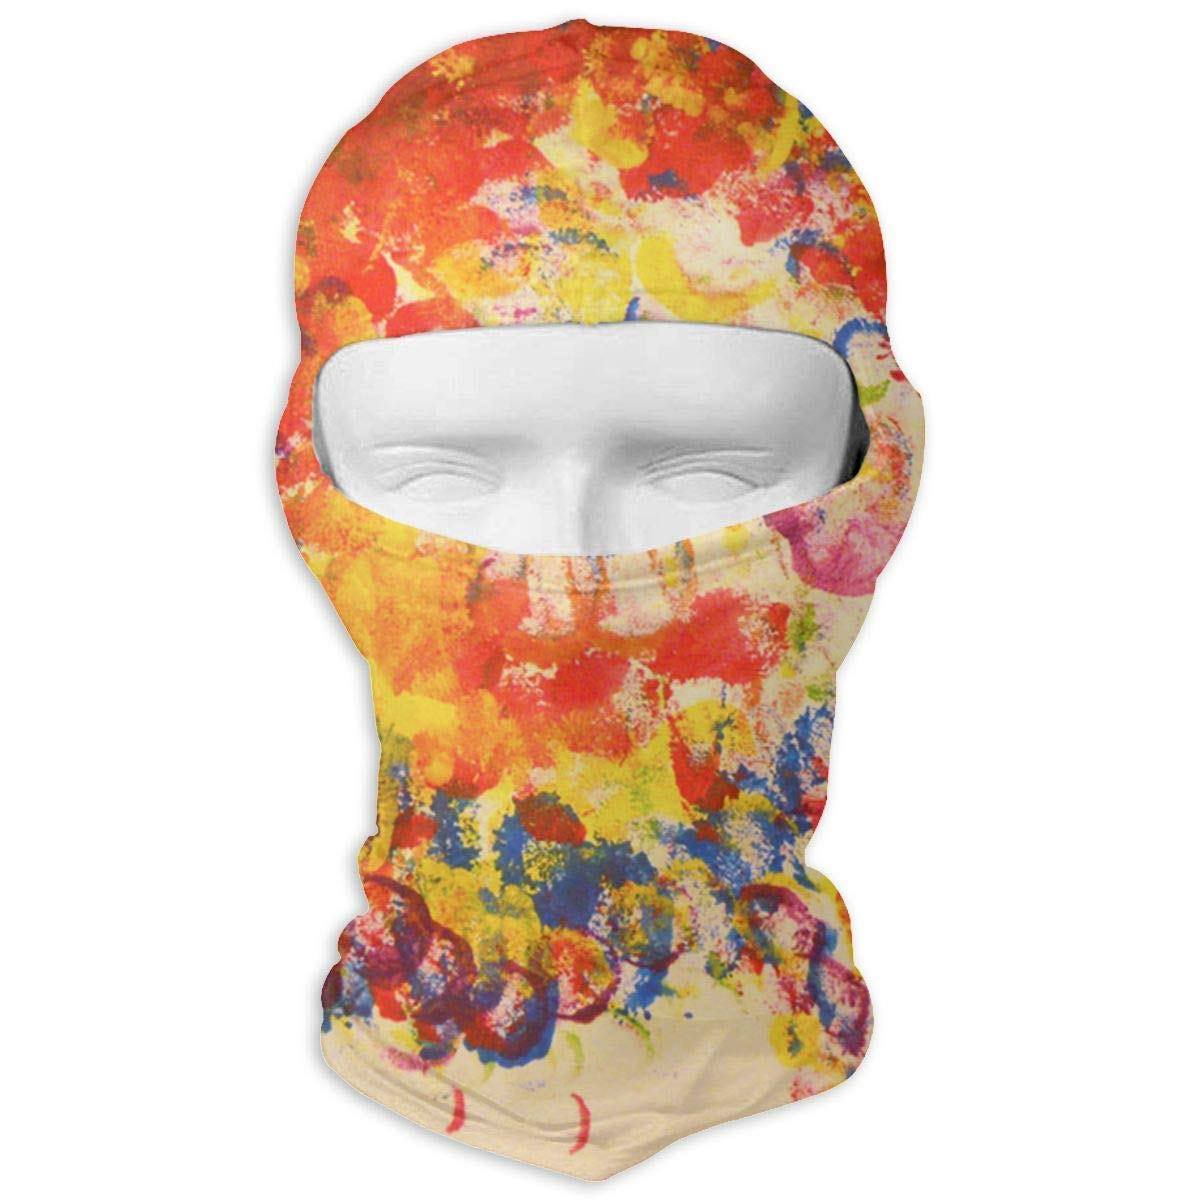 Animal Elephant Balaclava - Windproof Ski Mask - Motorcycle Full Face UV Protection Mask Multicolor1 Sdltkhy